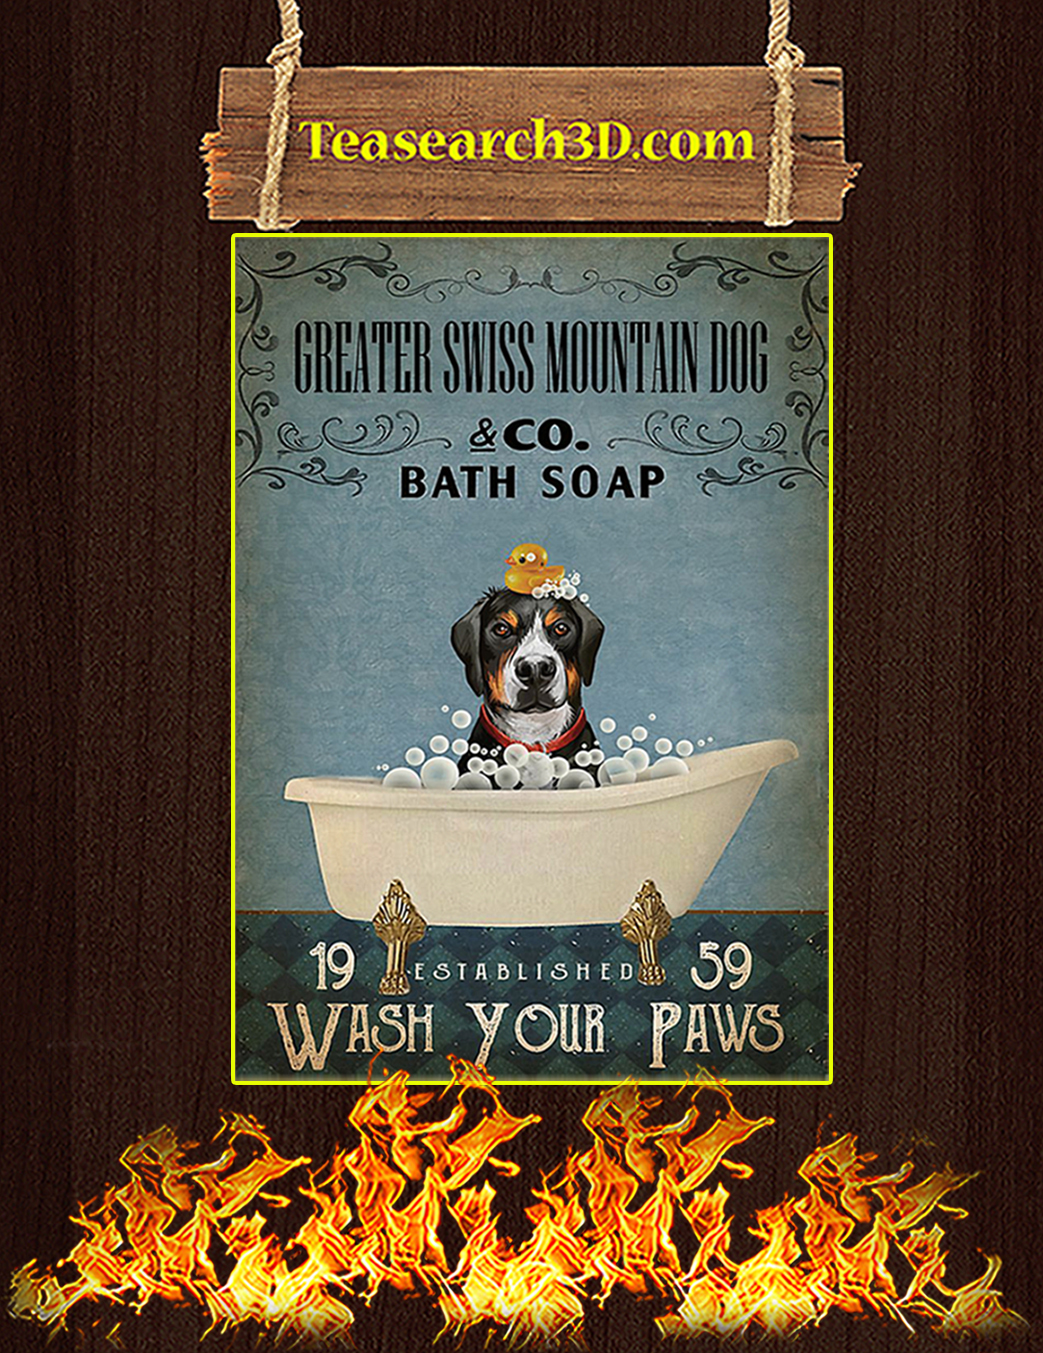 Bath soap company greater swiss mountain dog poster A1